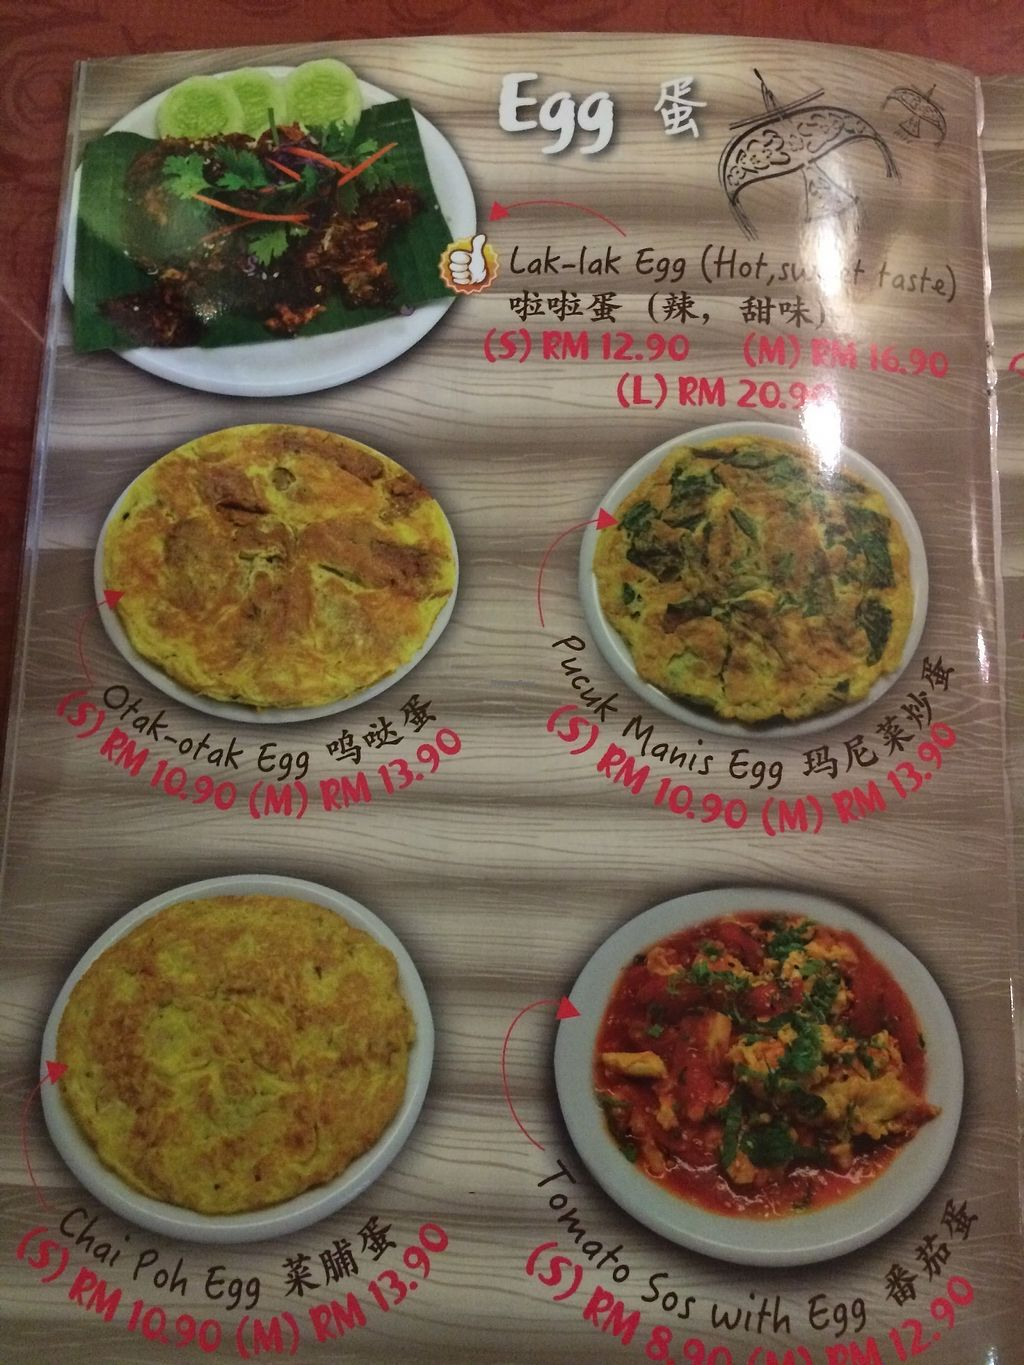 "Photo of Kampung Vege  by <a href=""/members/profile/LaurenceMontreuil"">LaurenceMontreuil</a> <br/>menu <br/> March 12, 2018  - <a href='/contact/abuse/image/63899/369592'>Report</a>"